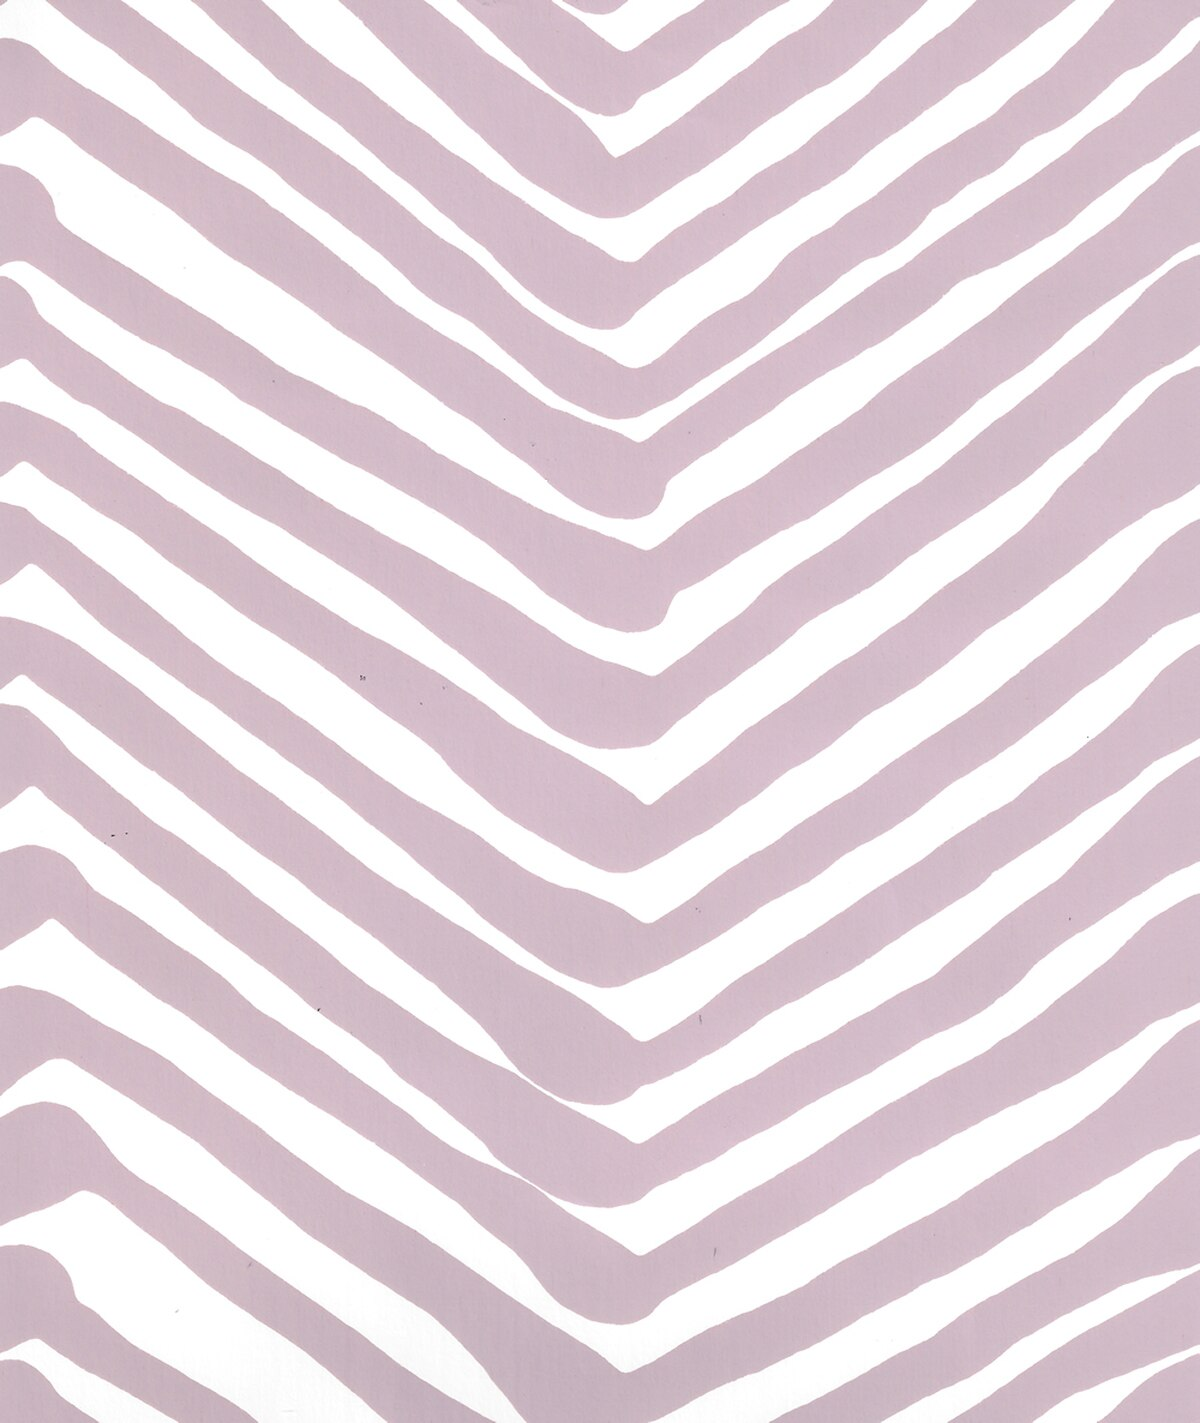 Quadrille Zig Zag Wallpaper 1000x1186